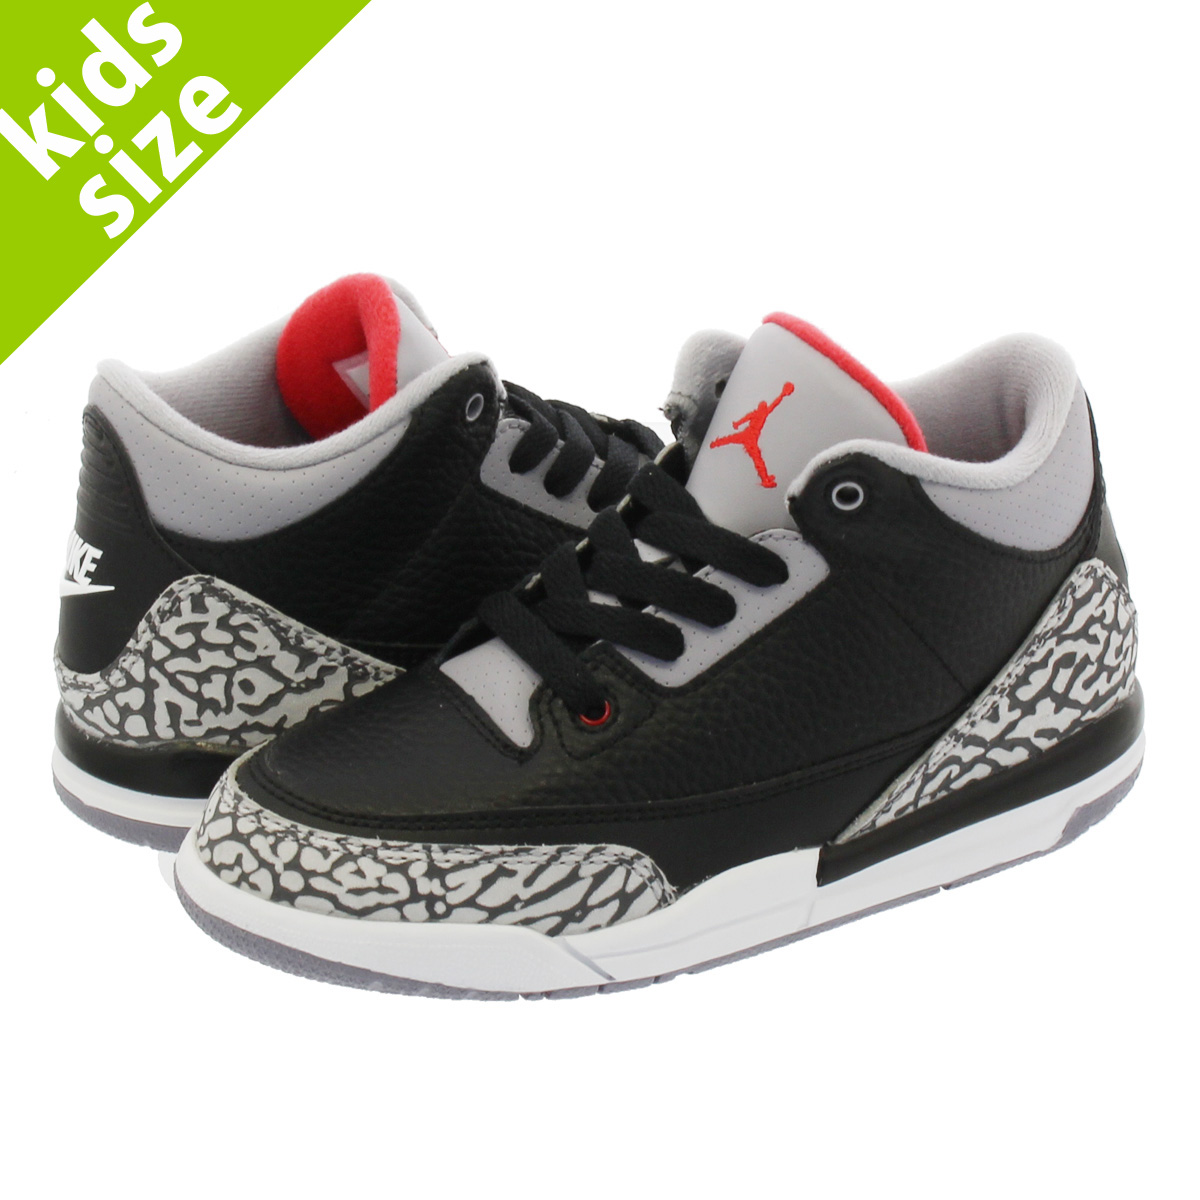 84a63166d2d1 NIKE AIR JORDAN 3 RETRO BP Nike Air Jordan 3 nostalgic BP BLACK FIRE RED CEMENT  GREY WHITE